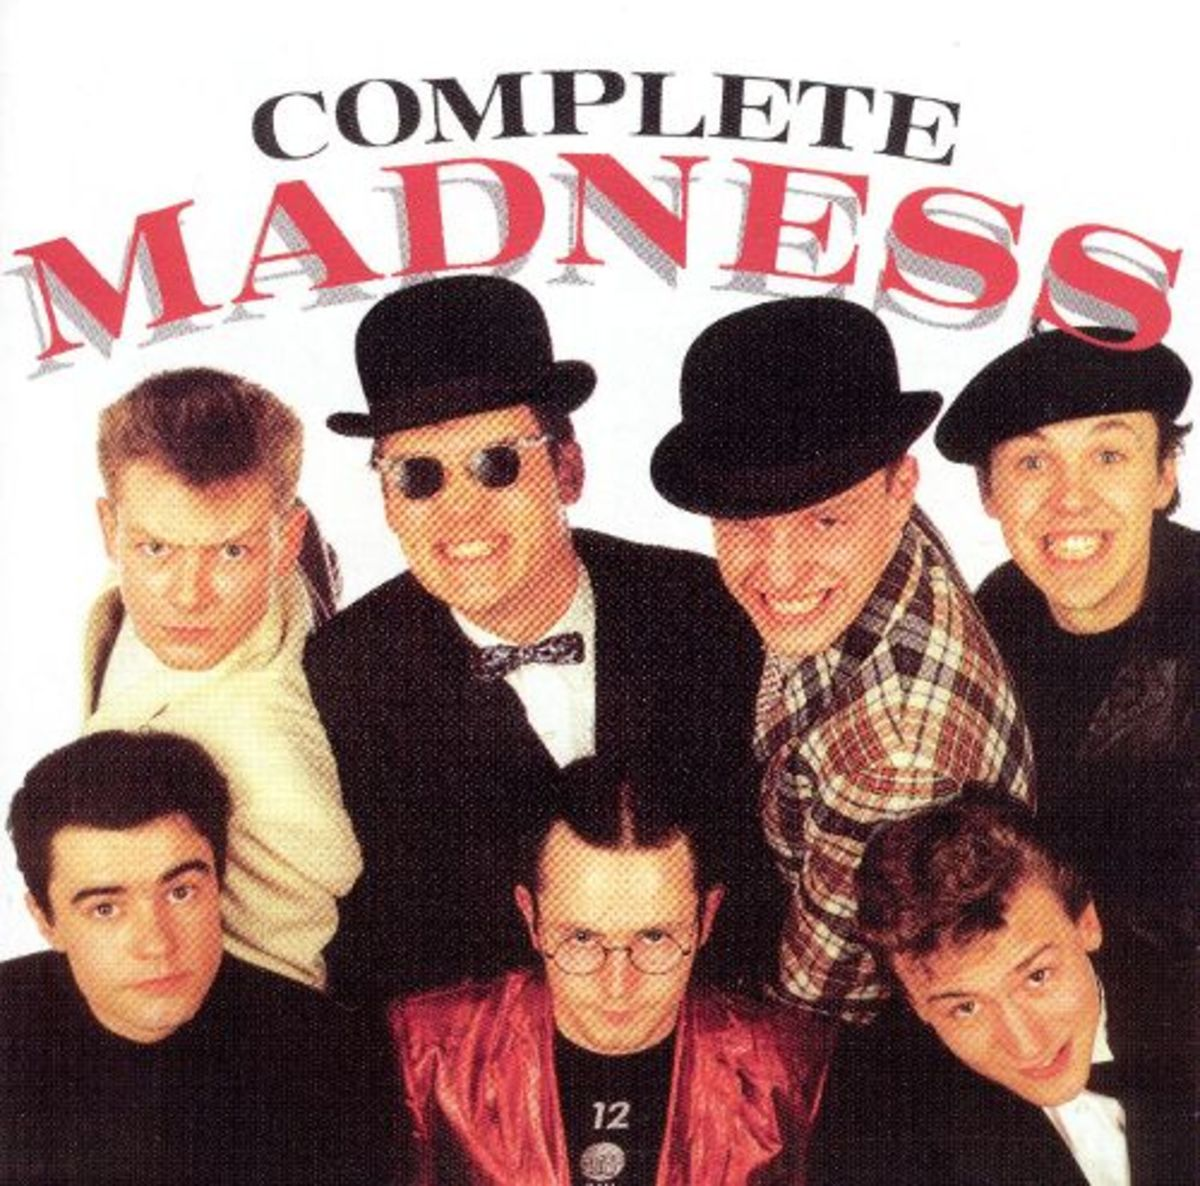 The Total Madness Album Contains Some Gems